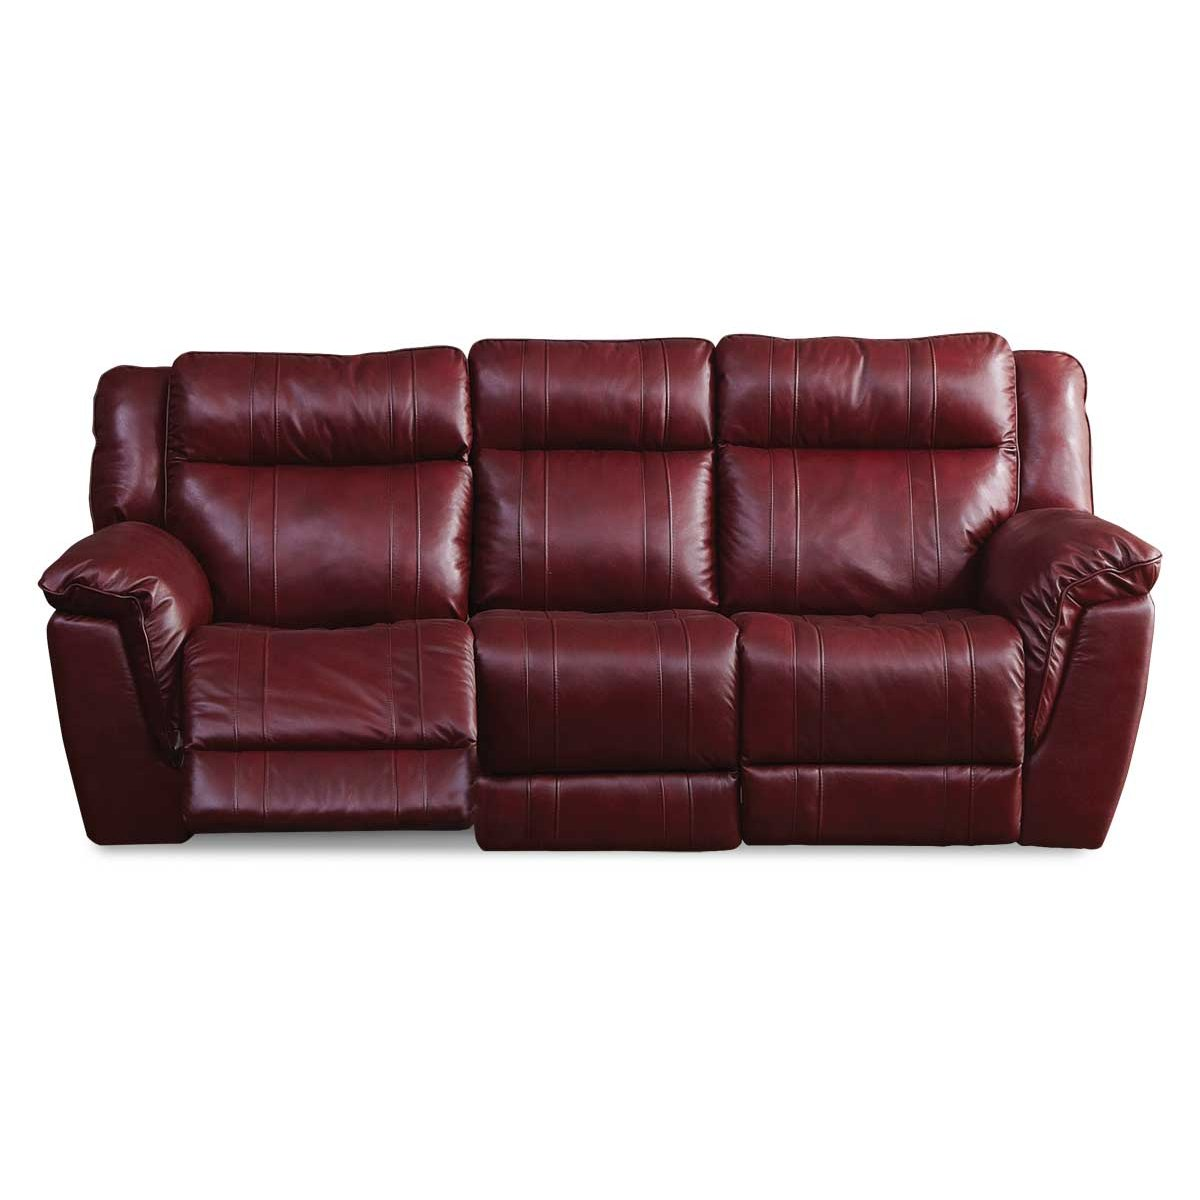 Chocolate Brown Microfiber Motion Recliner Loveseat Sofa